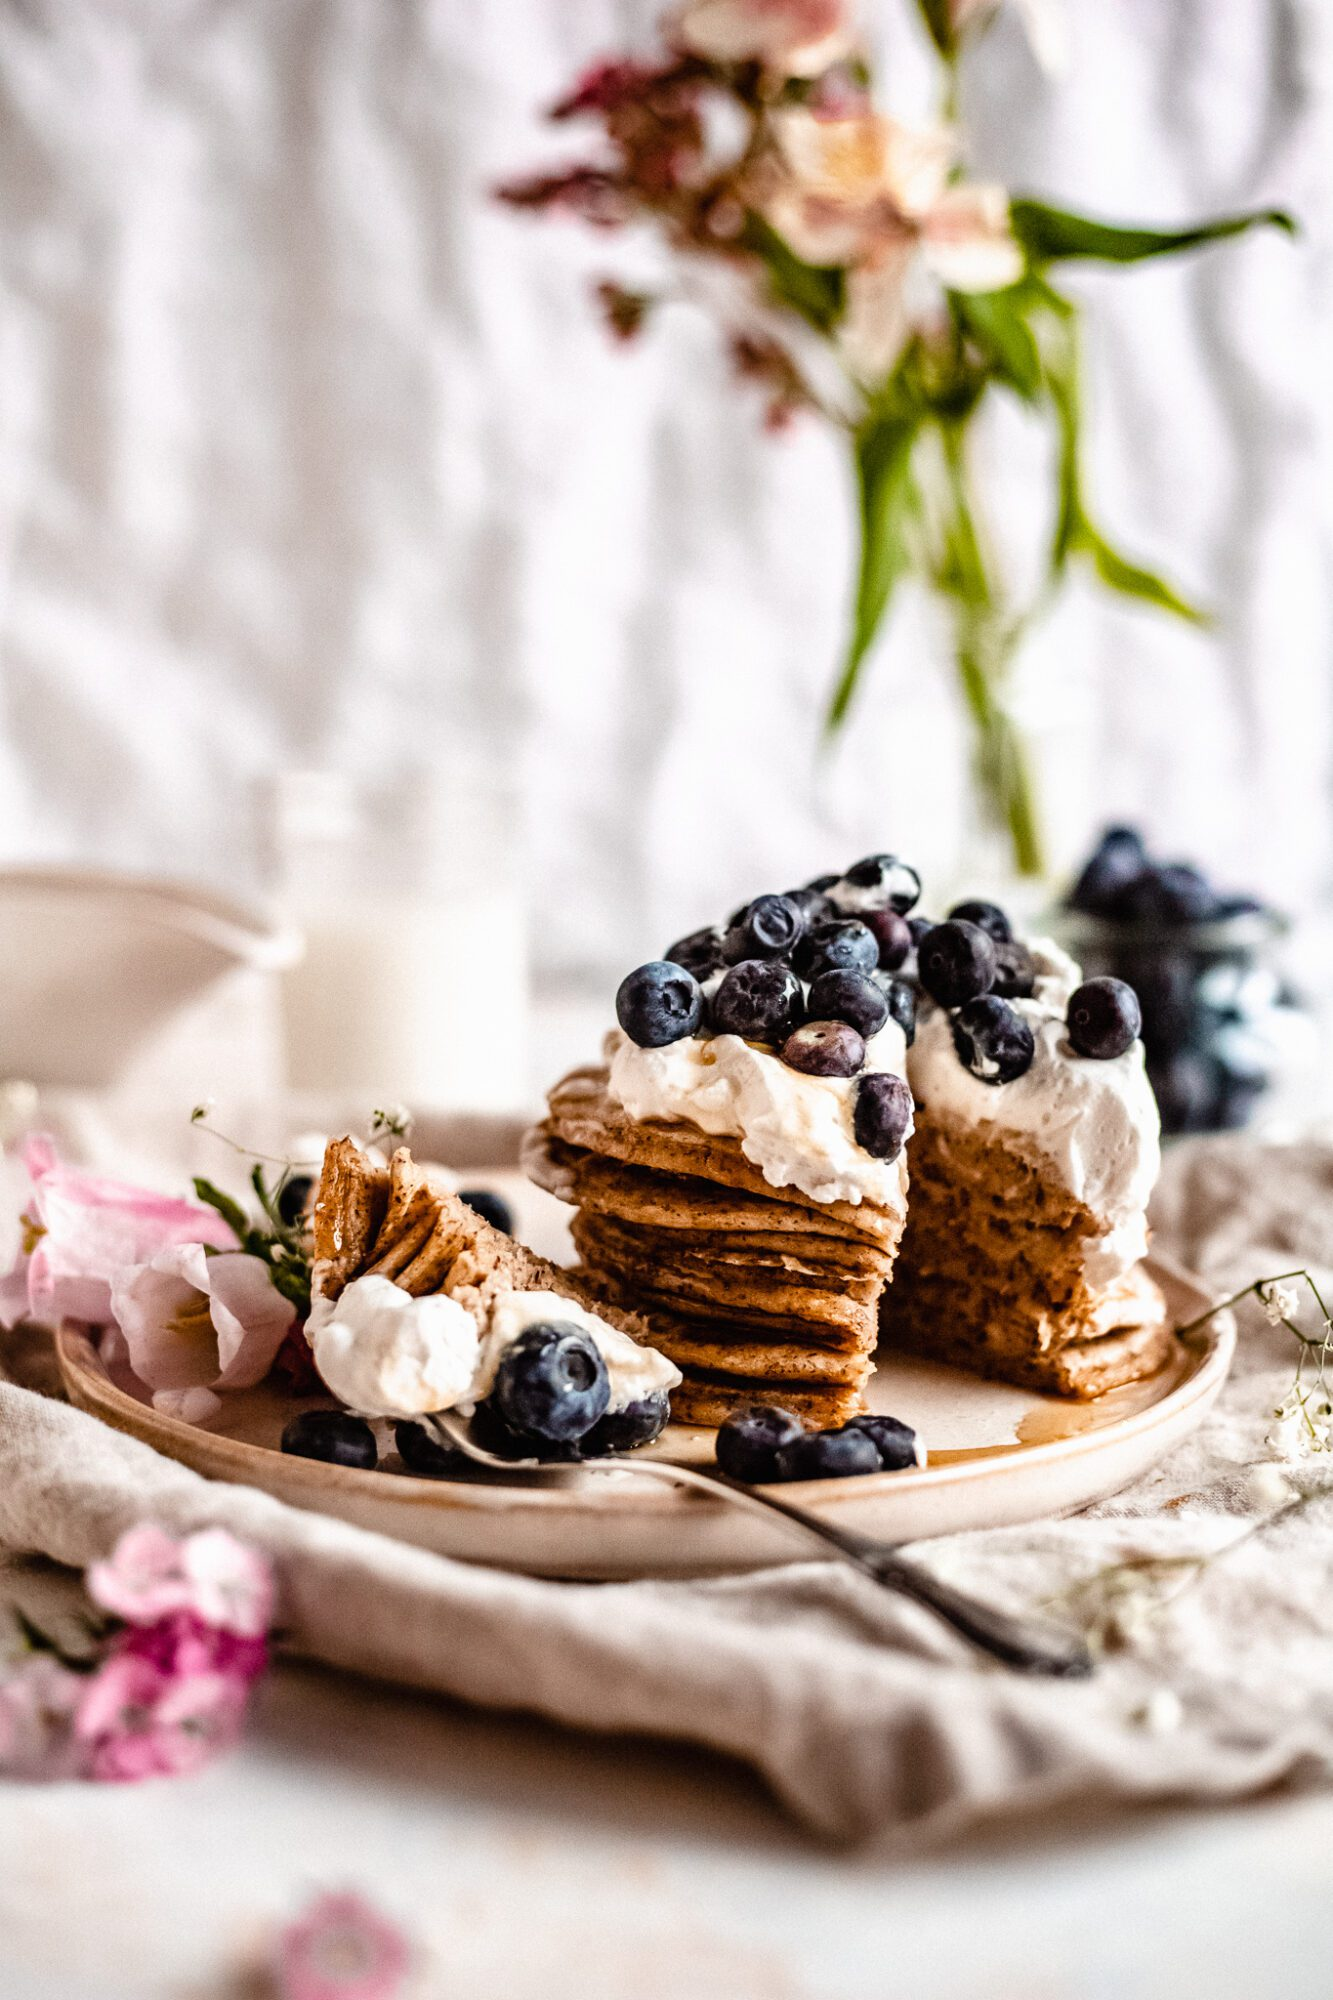 sliced gluten free pancakes with whipped cream and blueberries